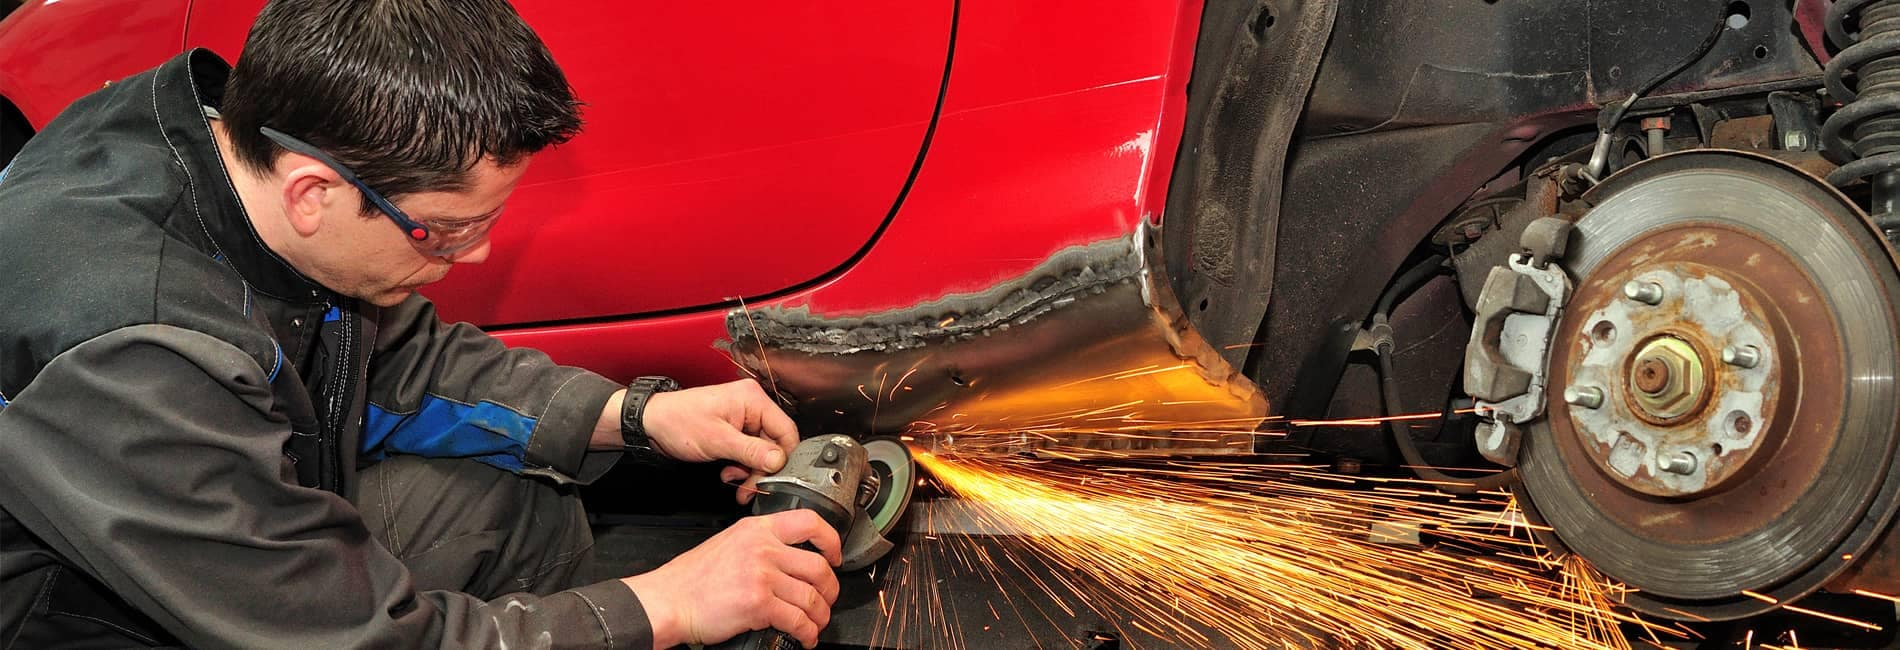 service technician working on car repair with sparks from grinder